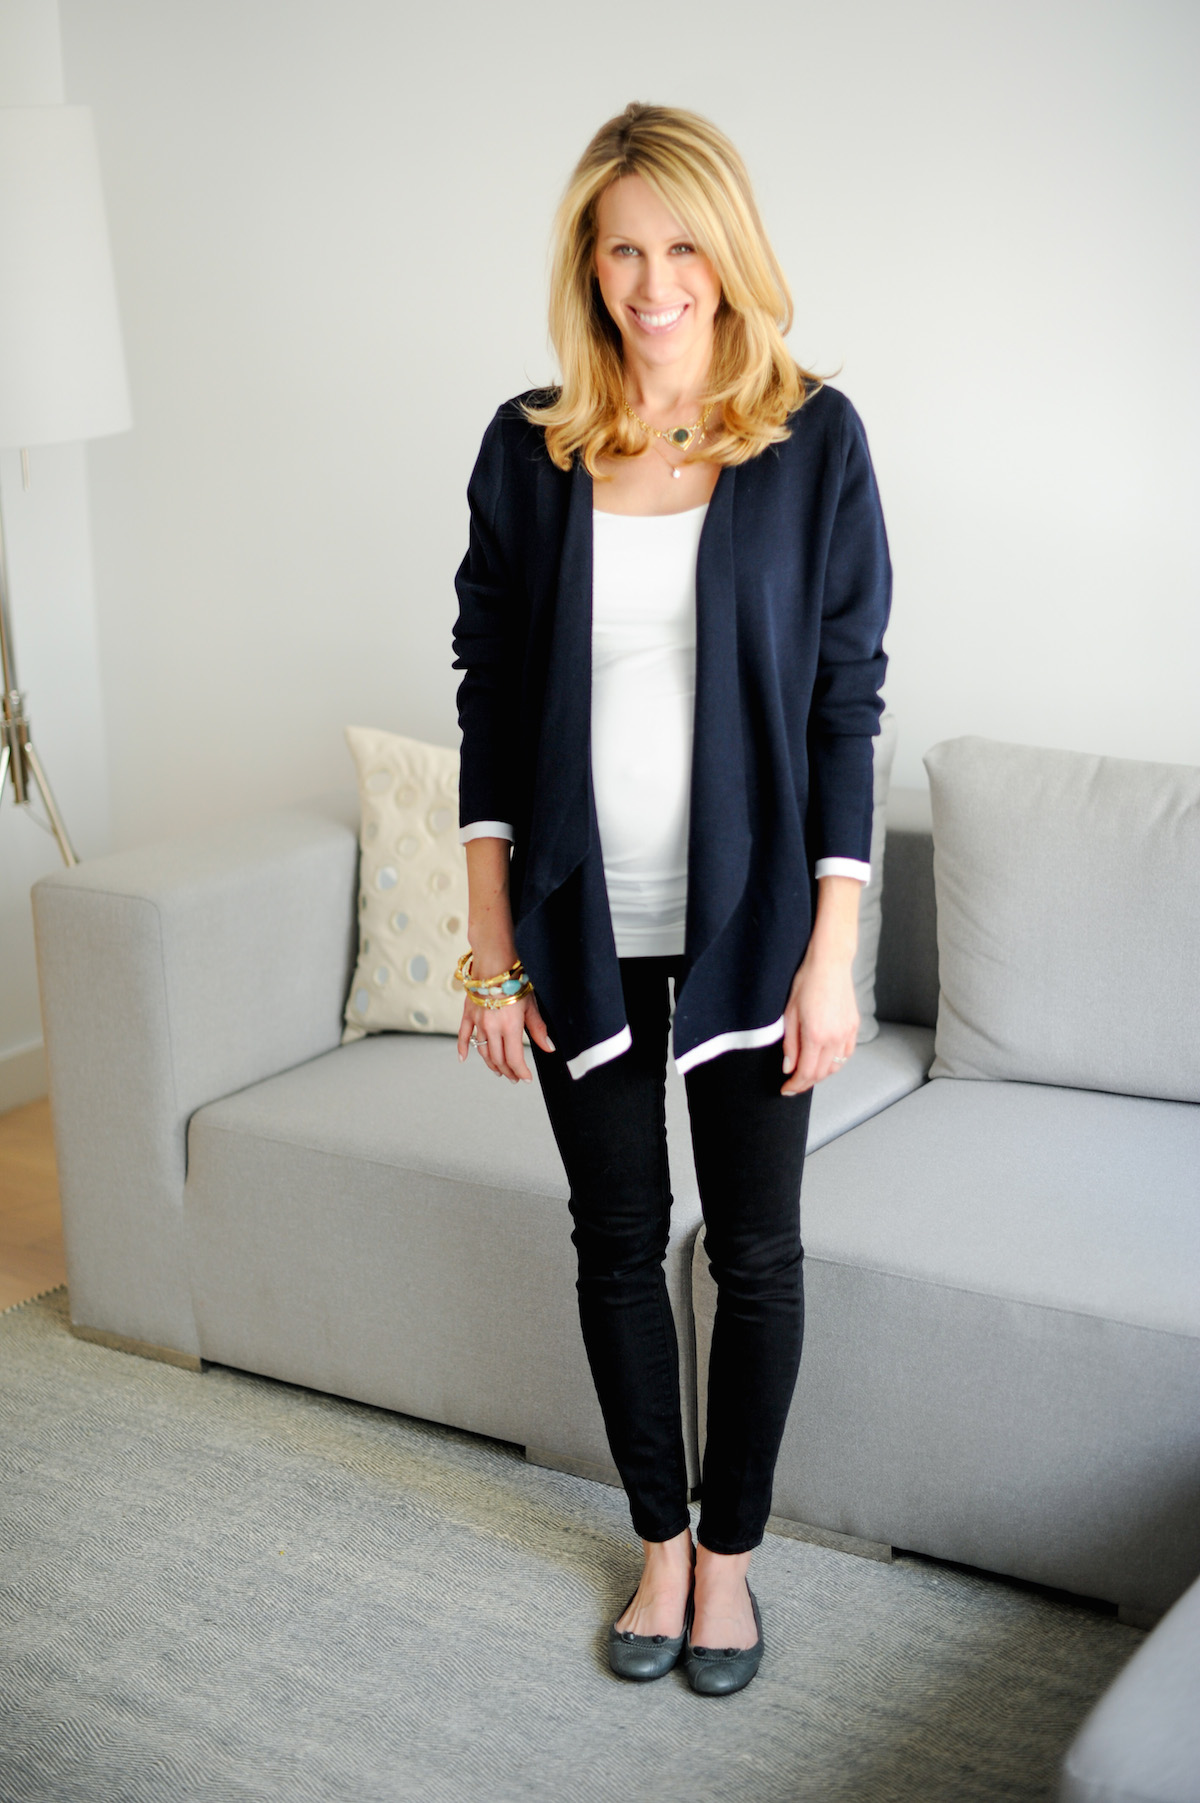 Work appropriate Cardigan from Jones NY by FashionableHostess.com